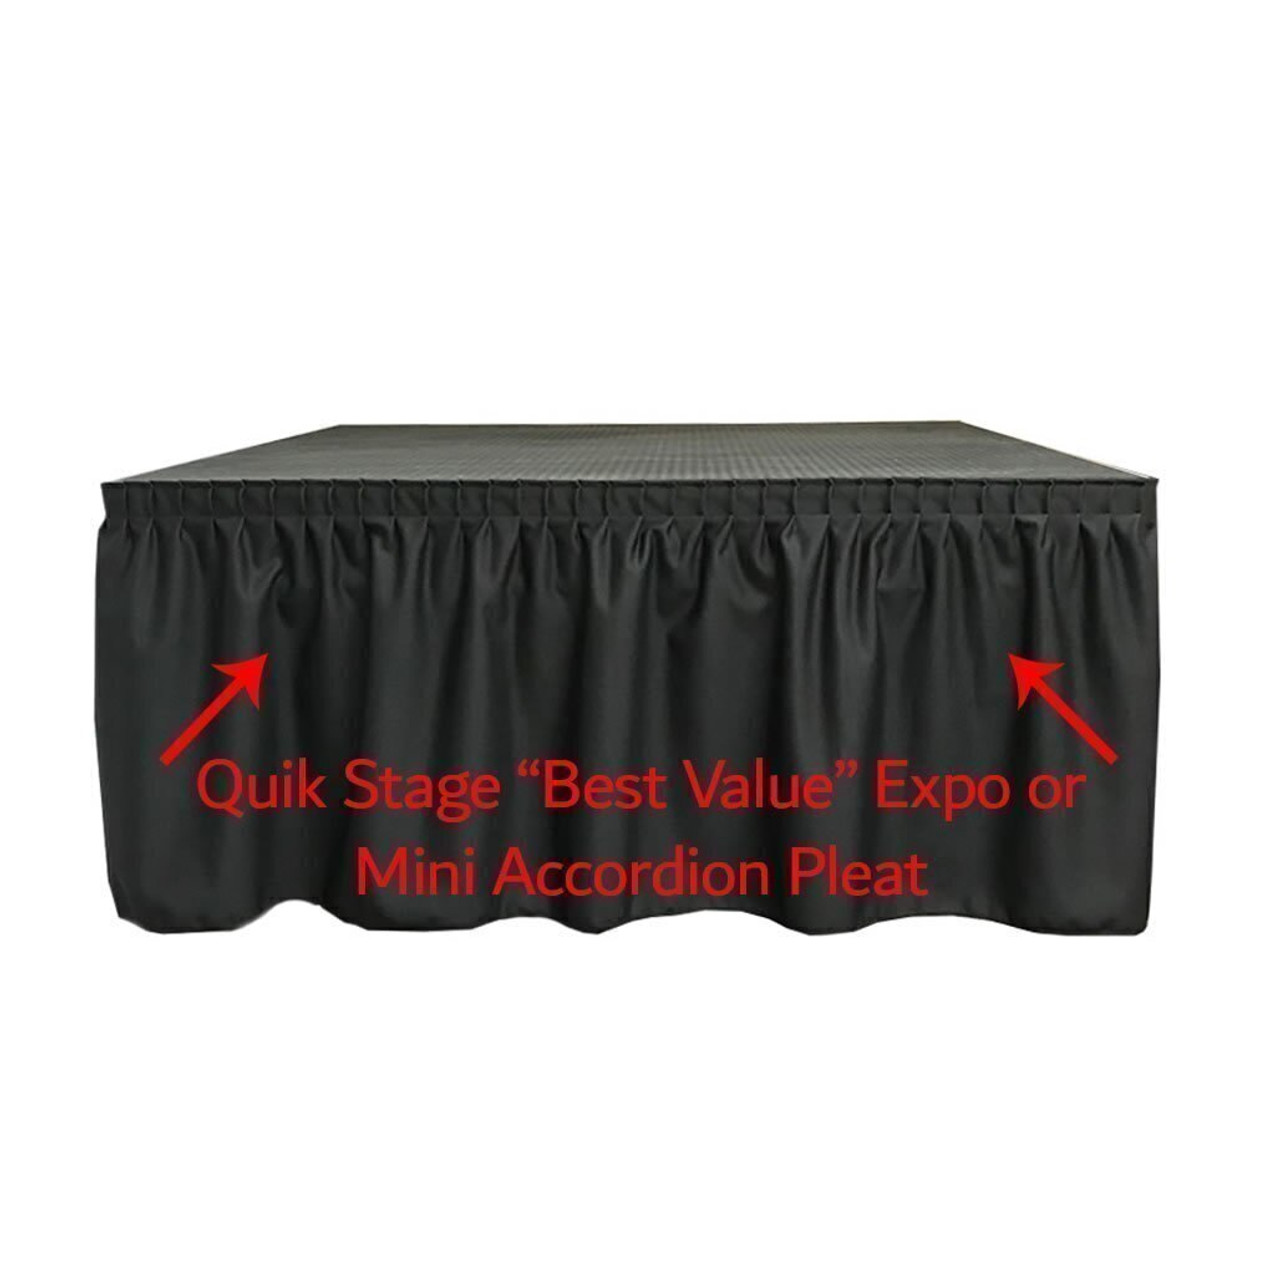 High Quality Quik Stage 4' x 40' High Portable Stage Package with Black Polyvinyl Non-Skid Surface. Additional Heights and Surfaces Available - Best Value Expo Pleat Stage Skirting